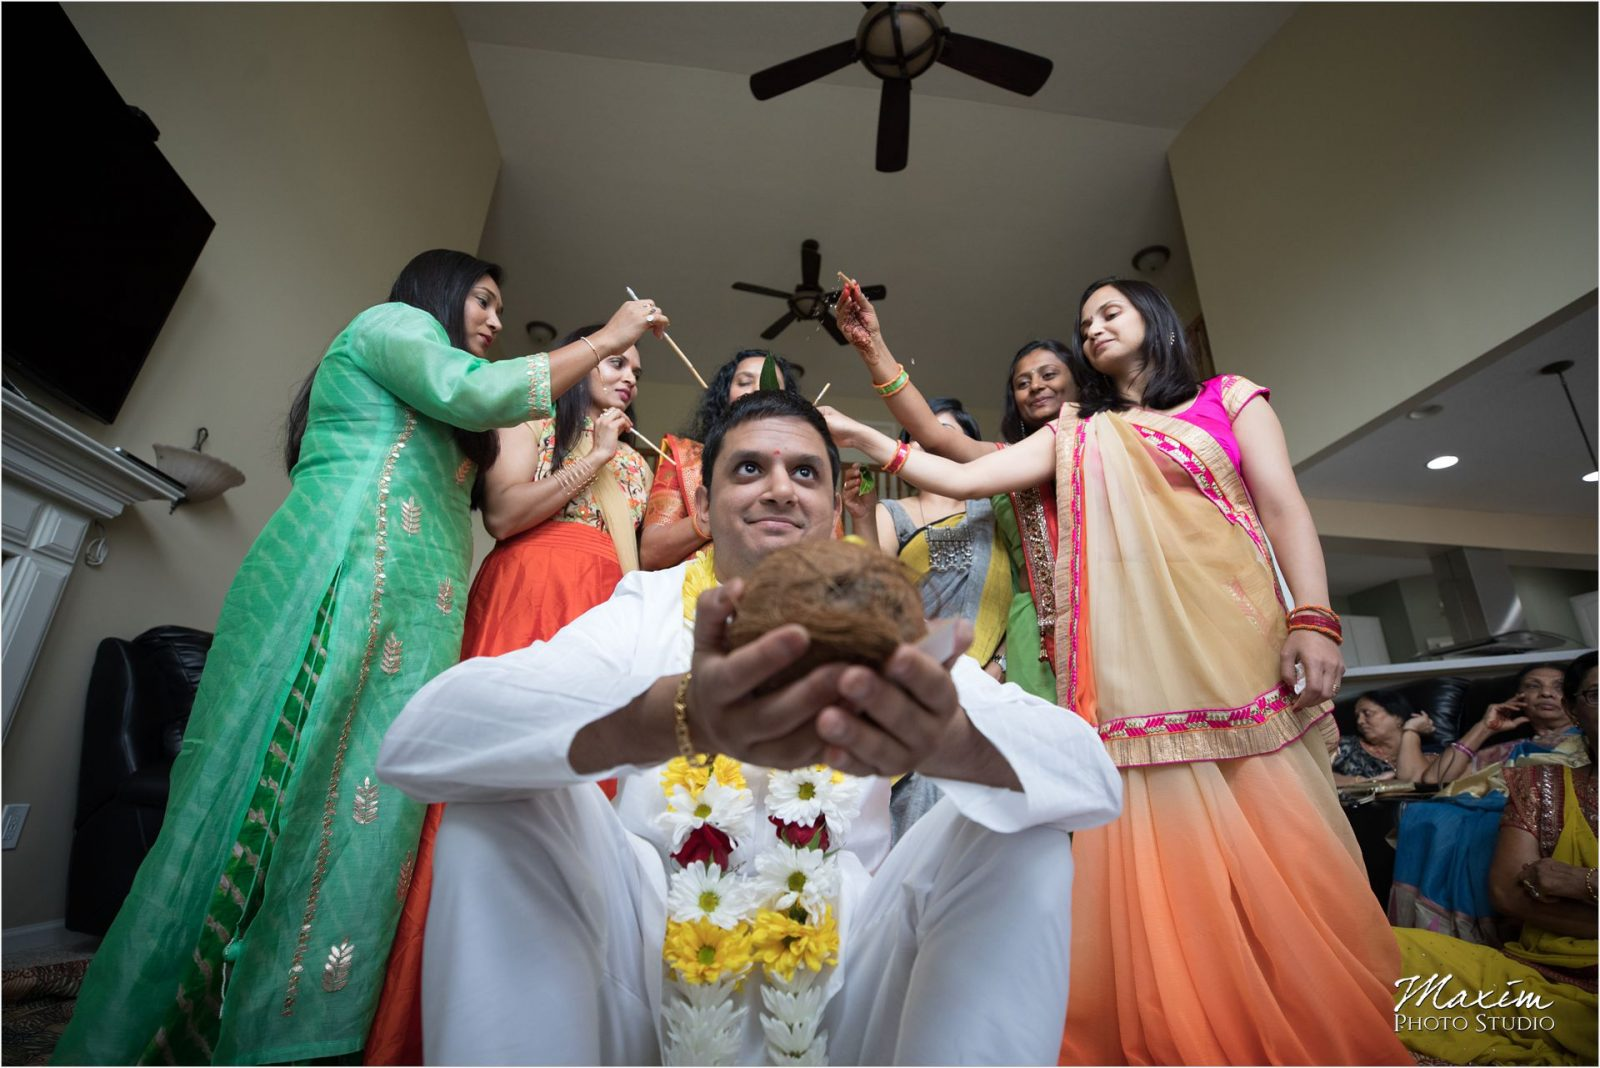 Haldi Ceremony Hindu Wedding Groom